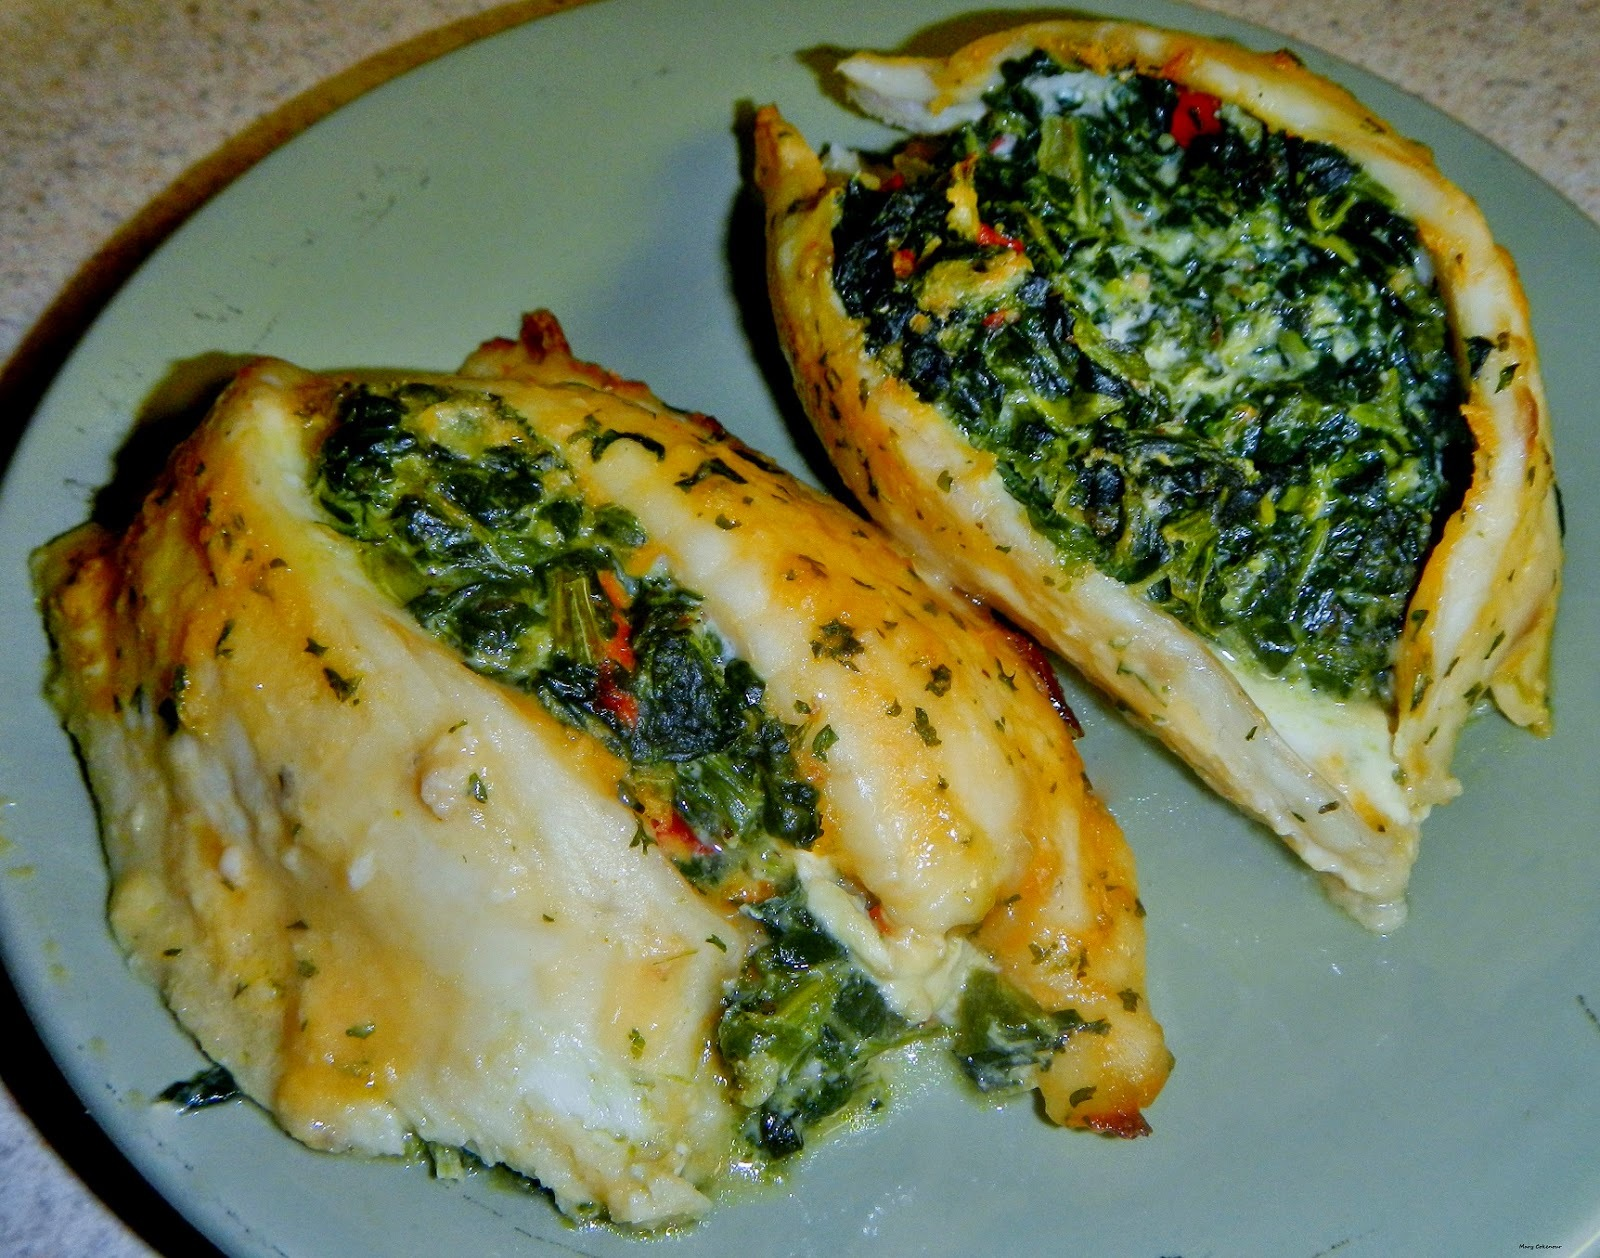 Florentine or Italian for Spinach Involved.